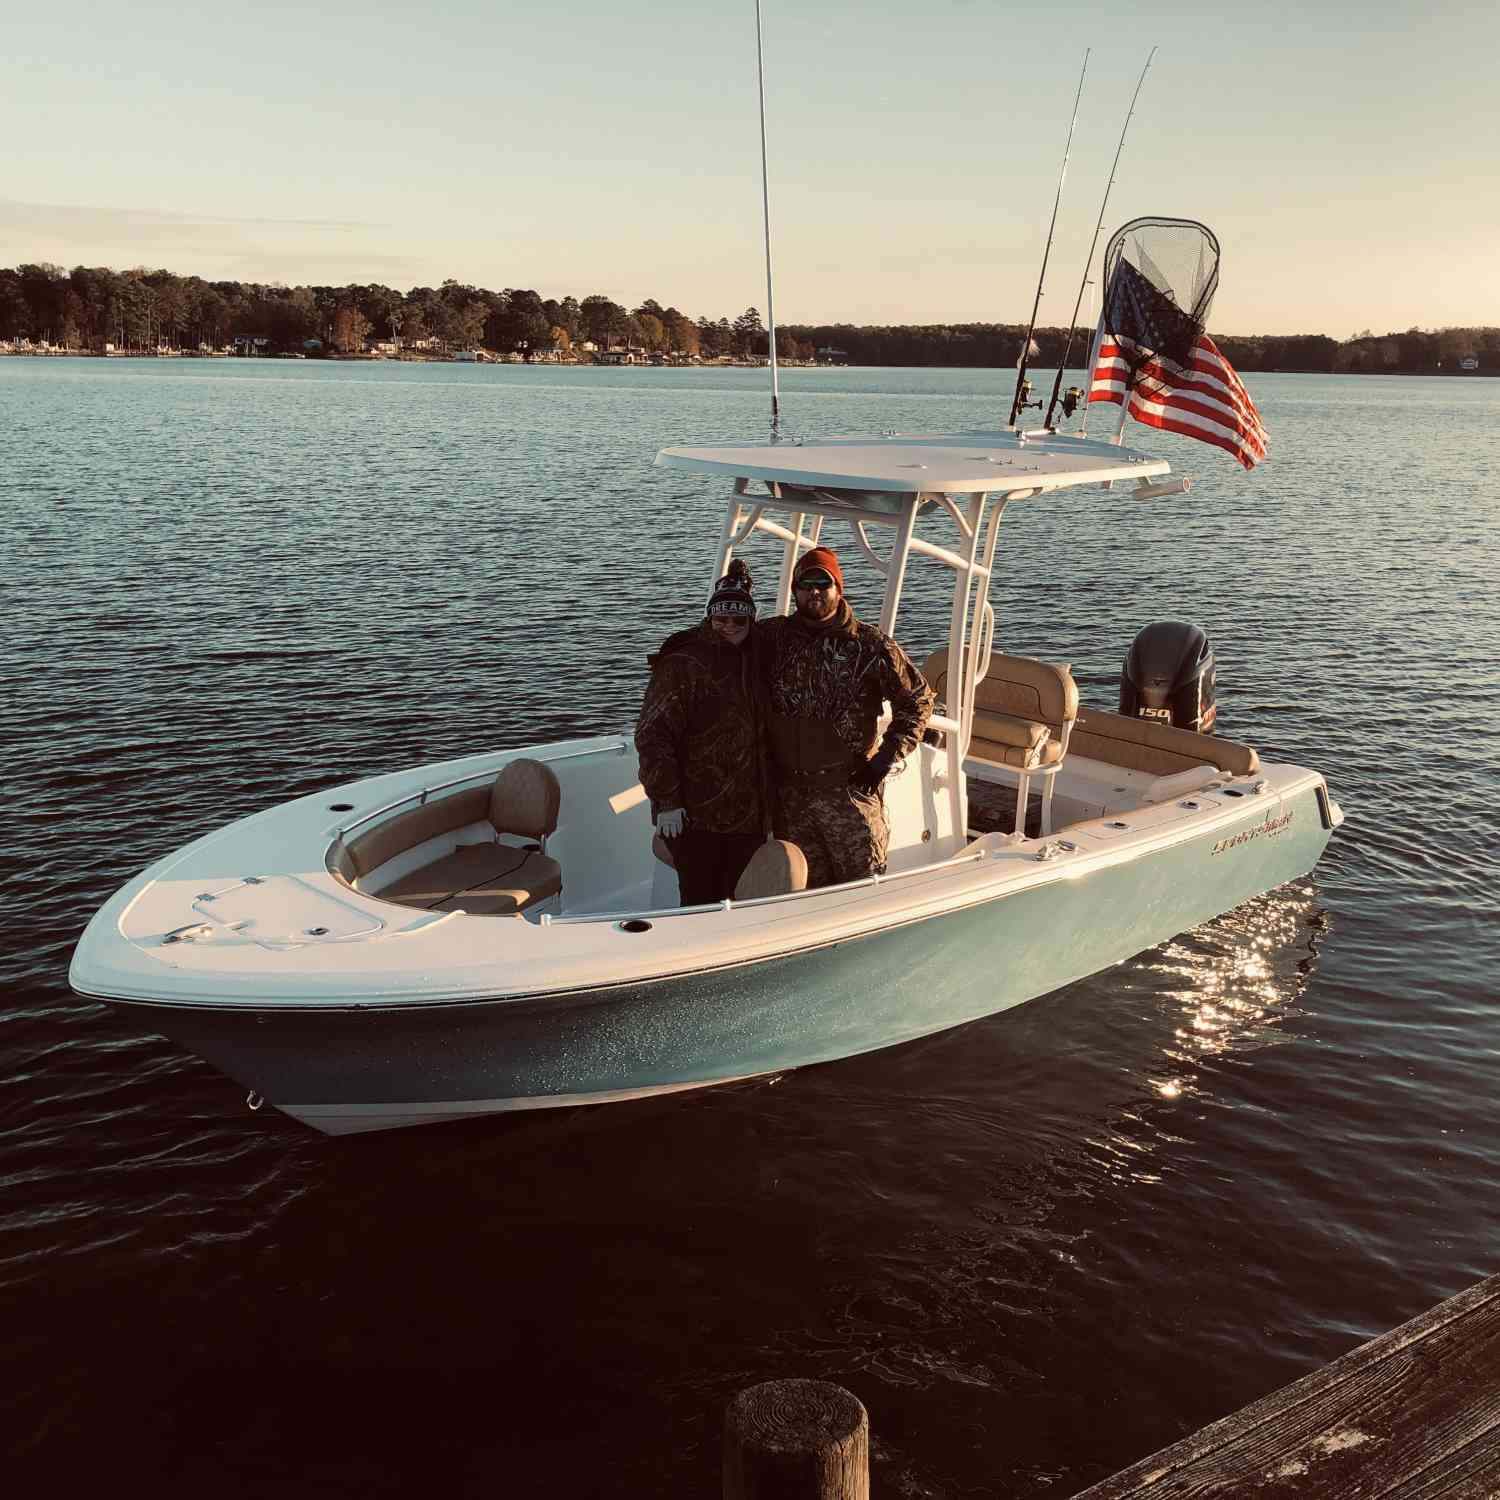 Title: First Day in the boat - On board their Sportsman Heritage 211 Center Console - Location: Virginia. Participating in the Photo Contest #SportsmanMay2020